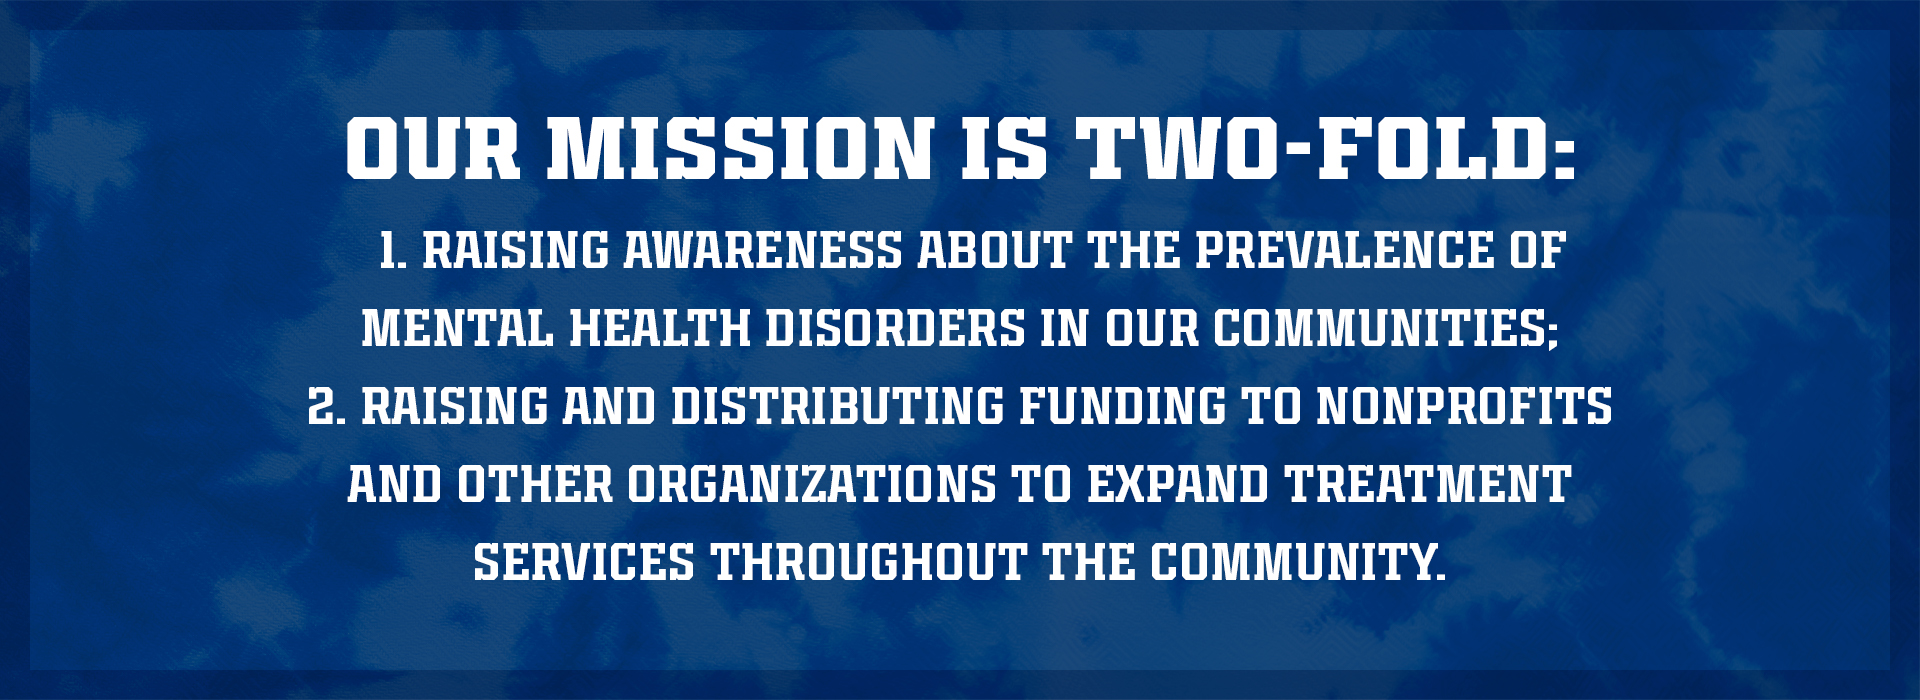 Our missions is two-fold: 1. Raising awareness about the prevalence of mental health disorders in our communities; 1. Raising and distributing funding to nonprofits and other organizations to expand treatment services throughout the community.